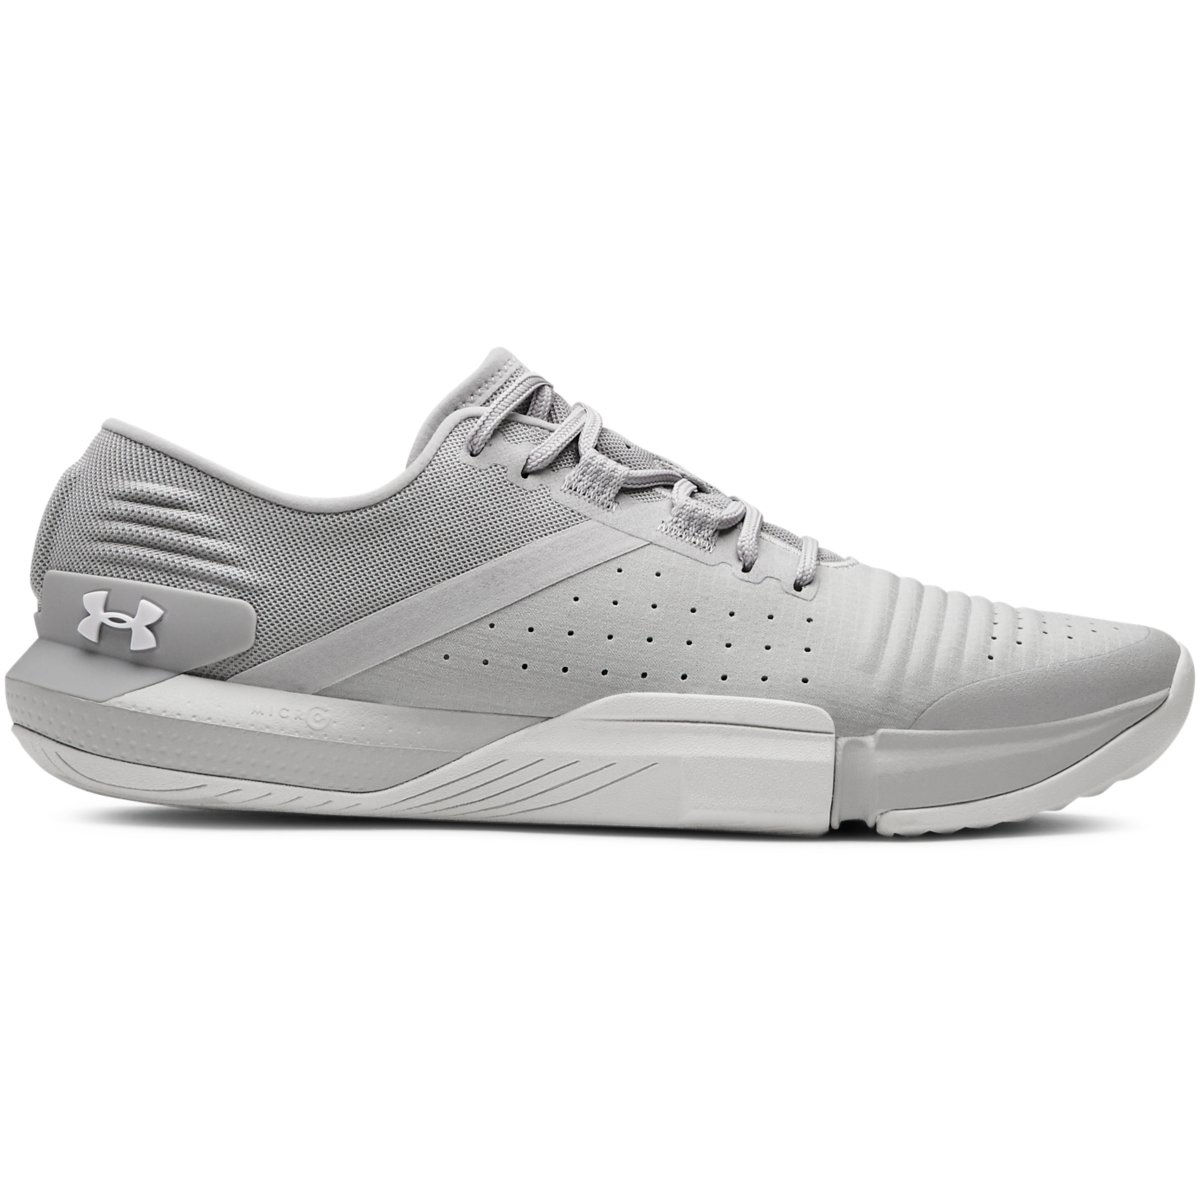 BUY Under Armour Women s TriBase Reign Gym Shoe - UK 8.5  60a34708b5c77